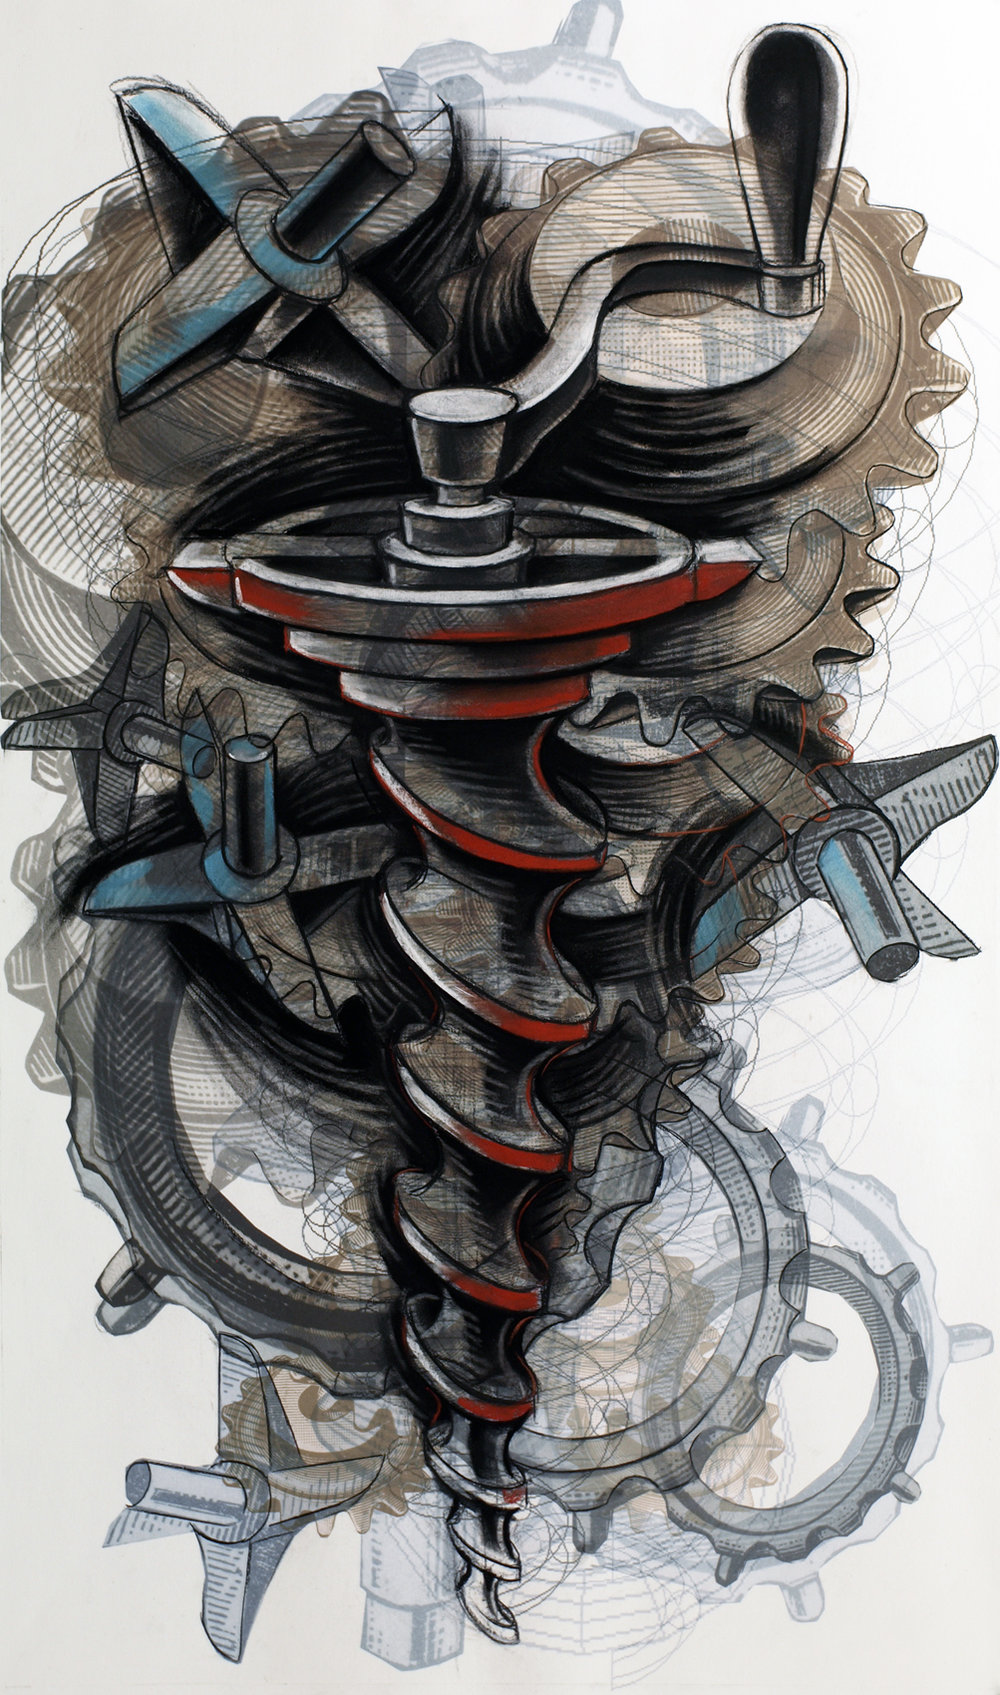 Jessica Gondek, Enterprising Machines, 2015, Charcoal, pastel and digital print, 46 x 29 inches